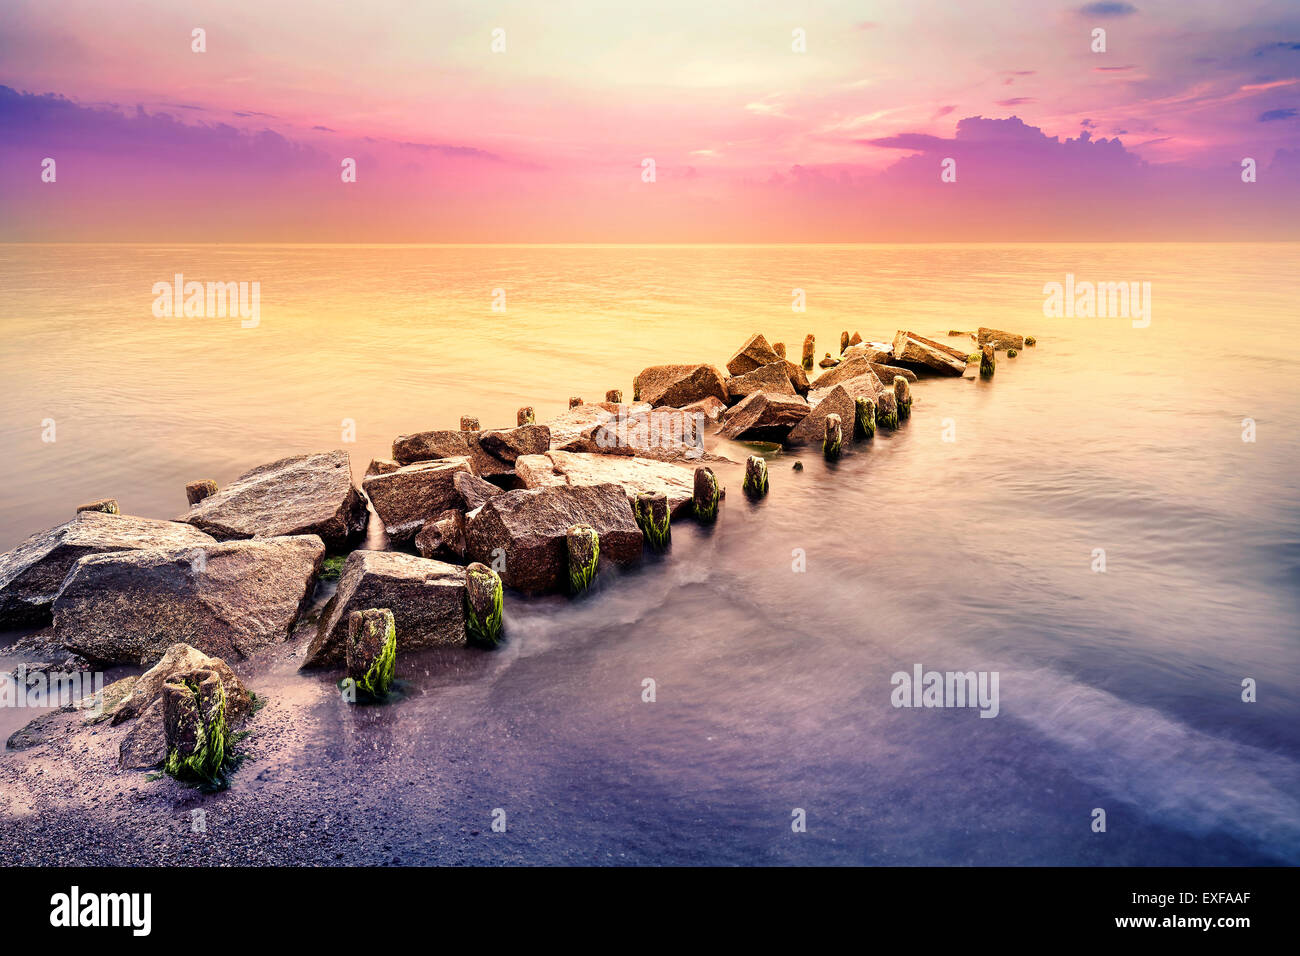 Golden hour, peaceful sea landscape after sunset. - Stock Image